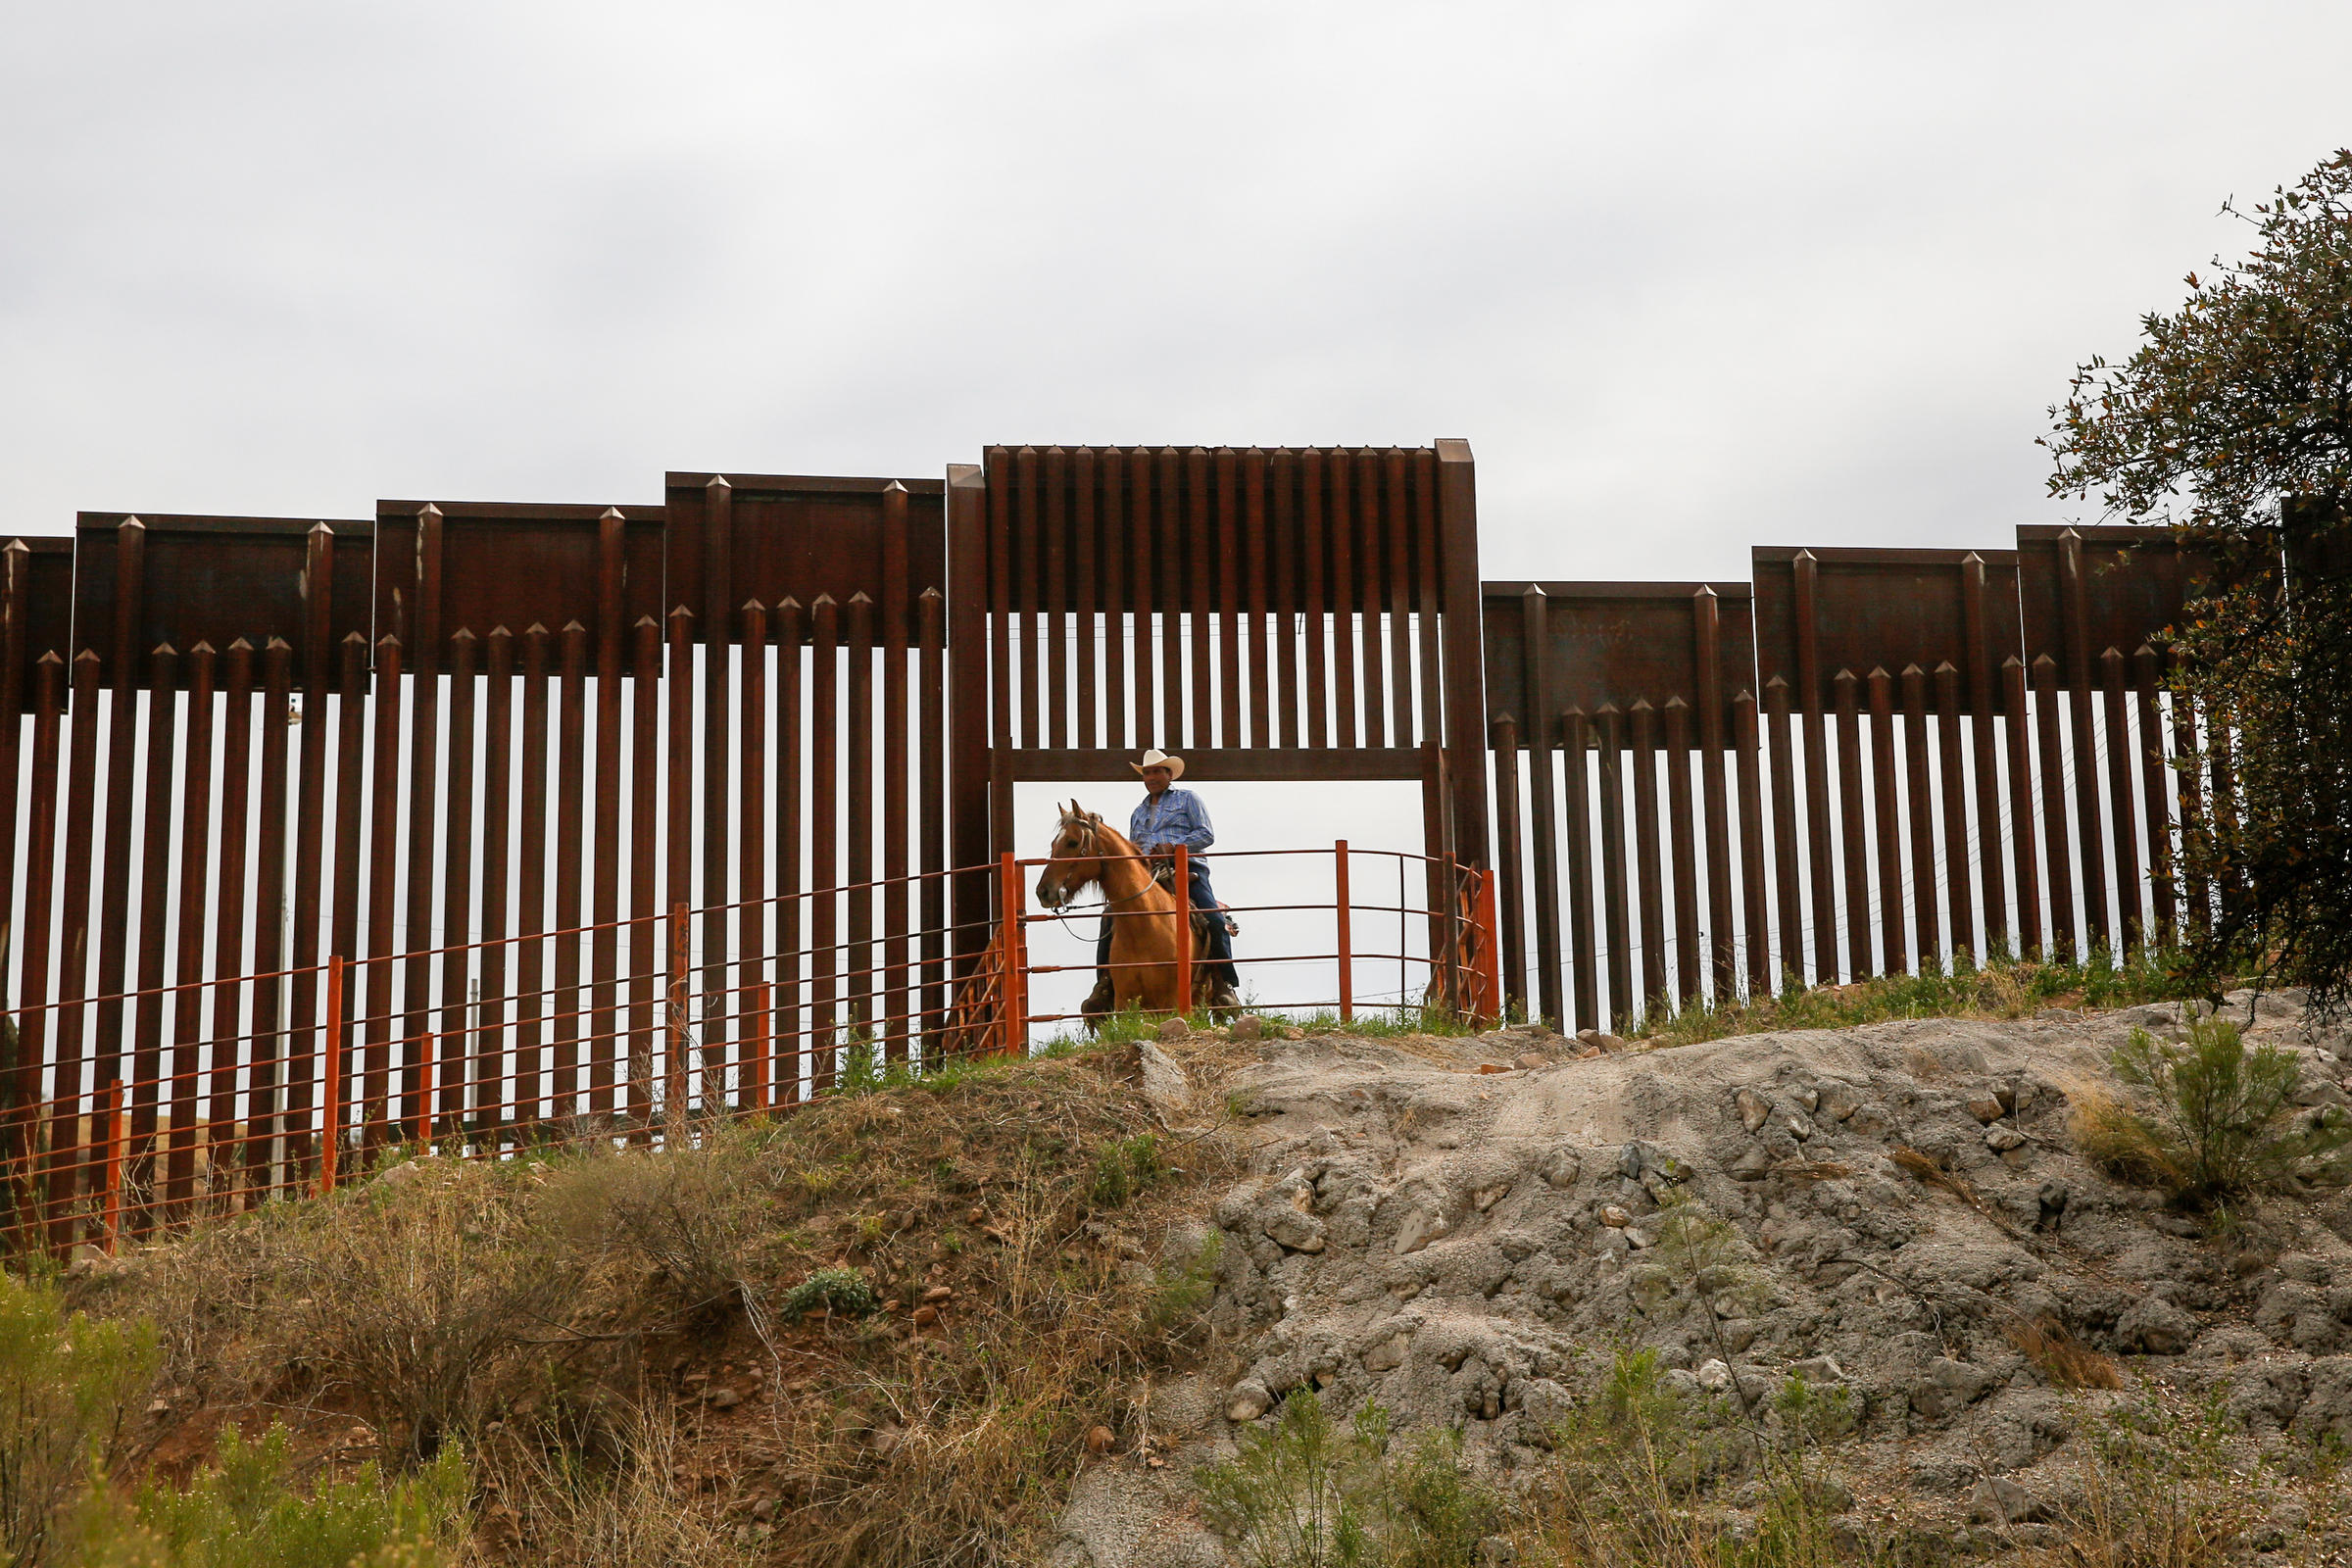 Where U.S.-Mexico border fence is tall, border crossings fall